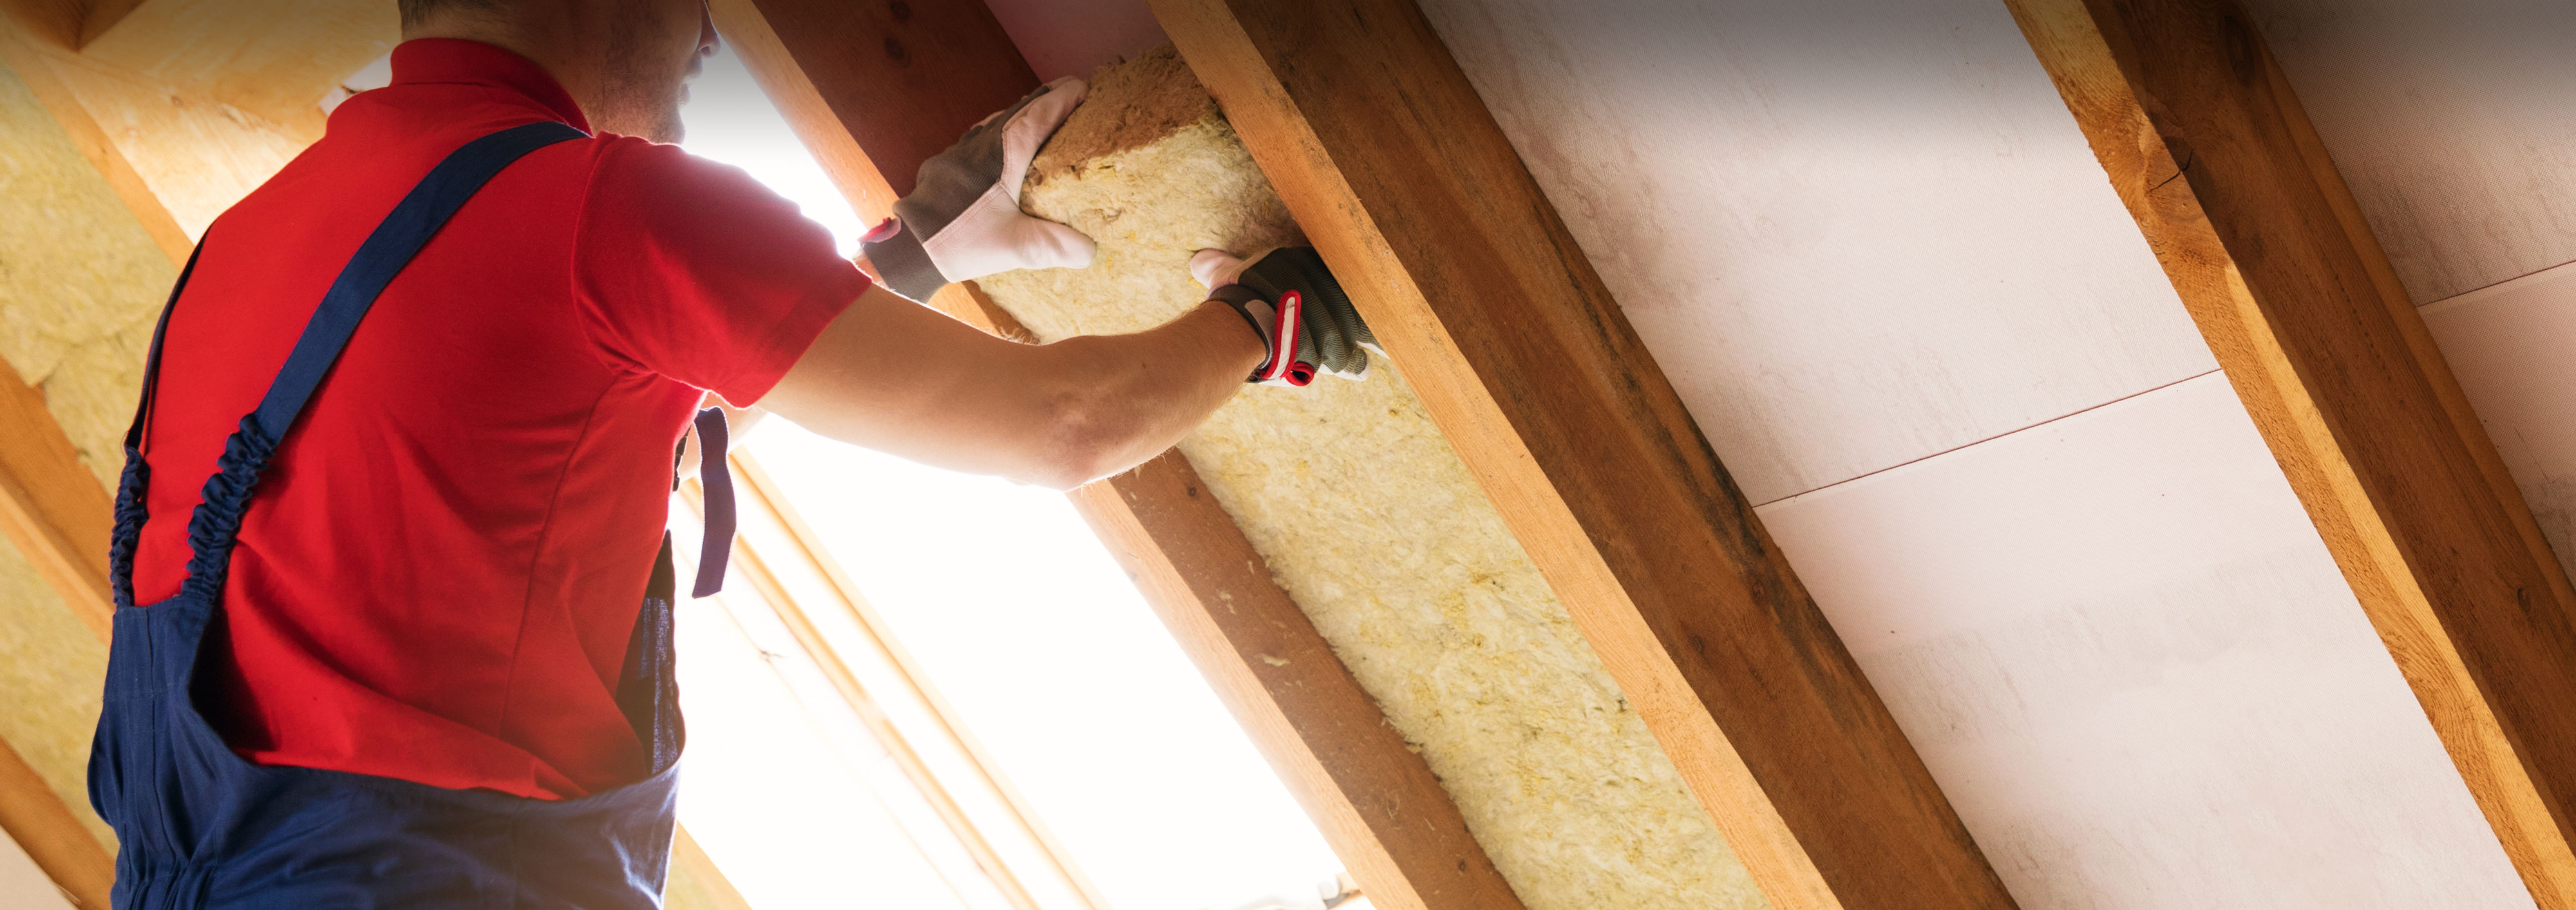 roof-insulation-costs-39